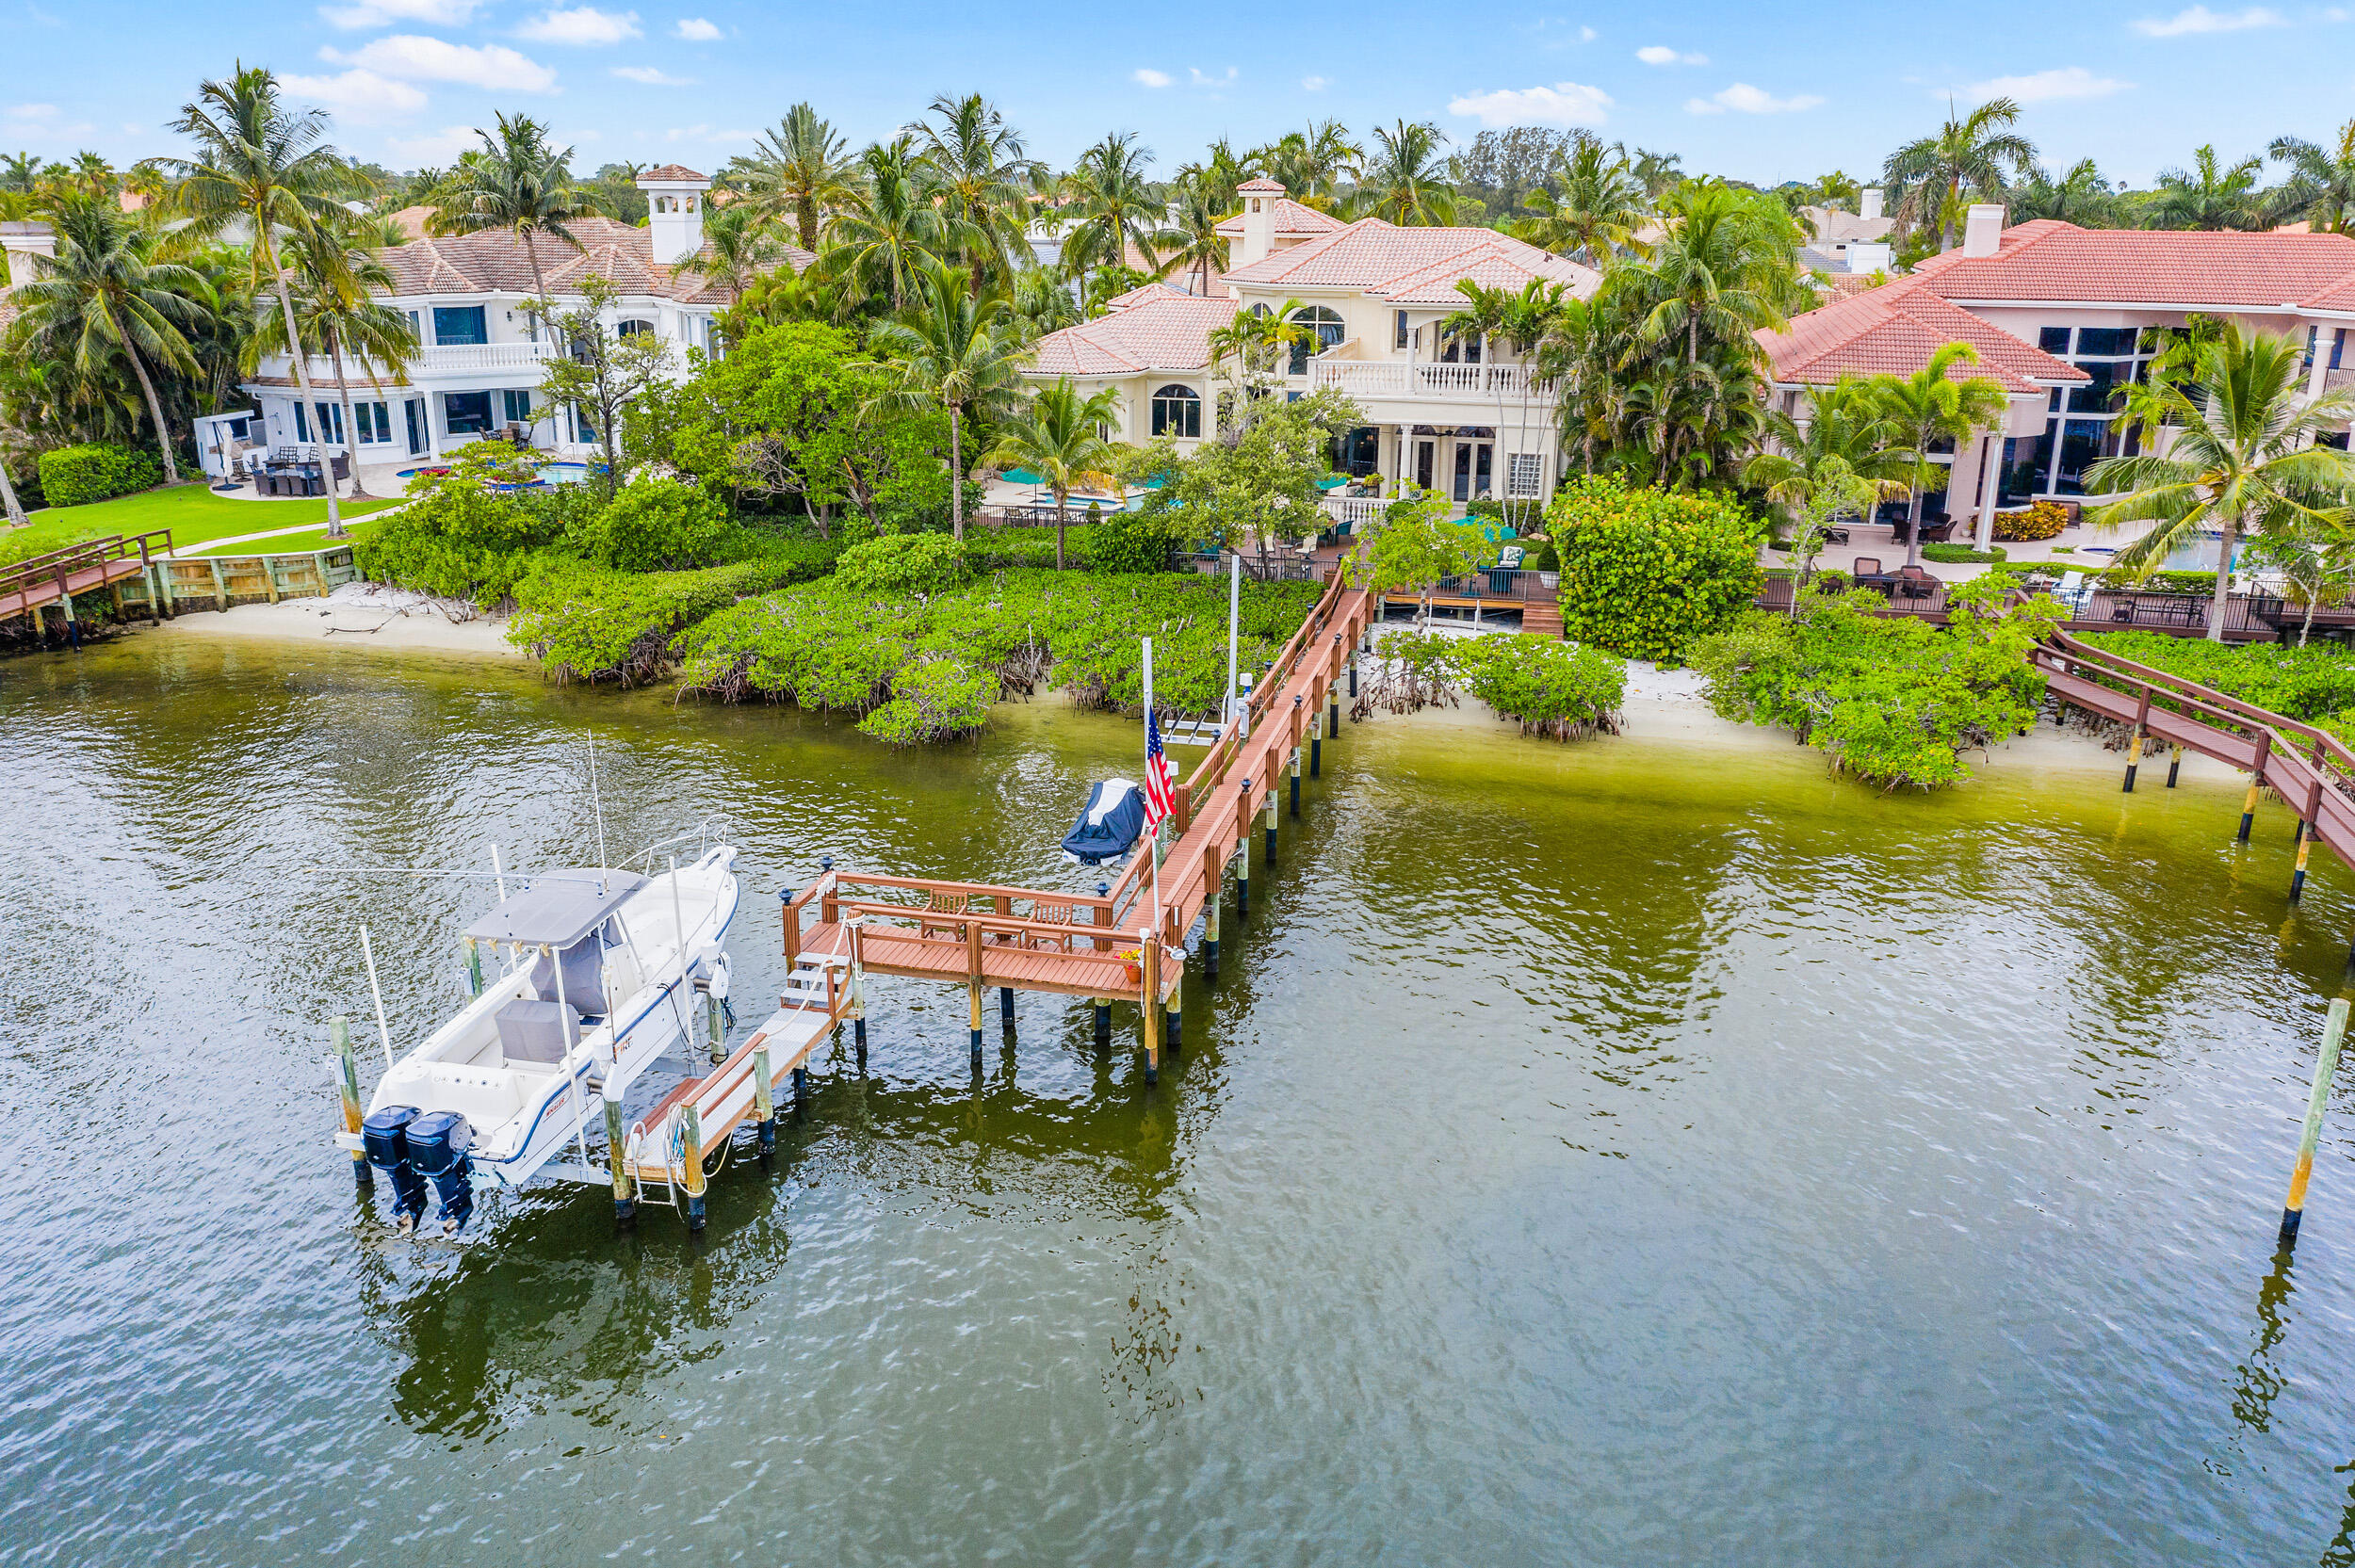 COME SEE THIS CASSEEKEY ISLAND GEM! This sought-after location in one of Jupiter's top selling, non-mandatory club, communities is a private enclave of 63 homes on navigable salt water. Jonathans Landing has a 24 hour manned gate and endless club amenities. Close to all Jupiter has to offer; restaurants, shops and some of the finest beaches in Palm Beach County. This Traditional style home sits on 100 ft of waterfrontage, complete with 4 bedrooms, 6.5 bathrooms, large ground floor master suite with His/Hers closets, den, kitchen, remodeled in 2018 with top of the line appliances. Exterior Features include a private pool, spa, fire pit, cabana bath, outdoor shower, large deck with custom lighting, 2 covered balconies, 1 open balcony facing West (for the sunset watchers). (See Supplementa The best part is being able to launch your paddle board/kayak from your private beach right next to the 105 foot fingerling dock complete with two jet ski lifts and a 12,000lb lift to accommodate up to a 38 foot boat. Come live in paradise!!